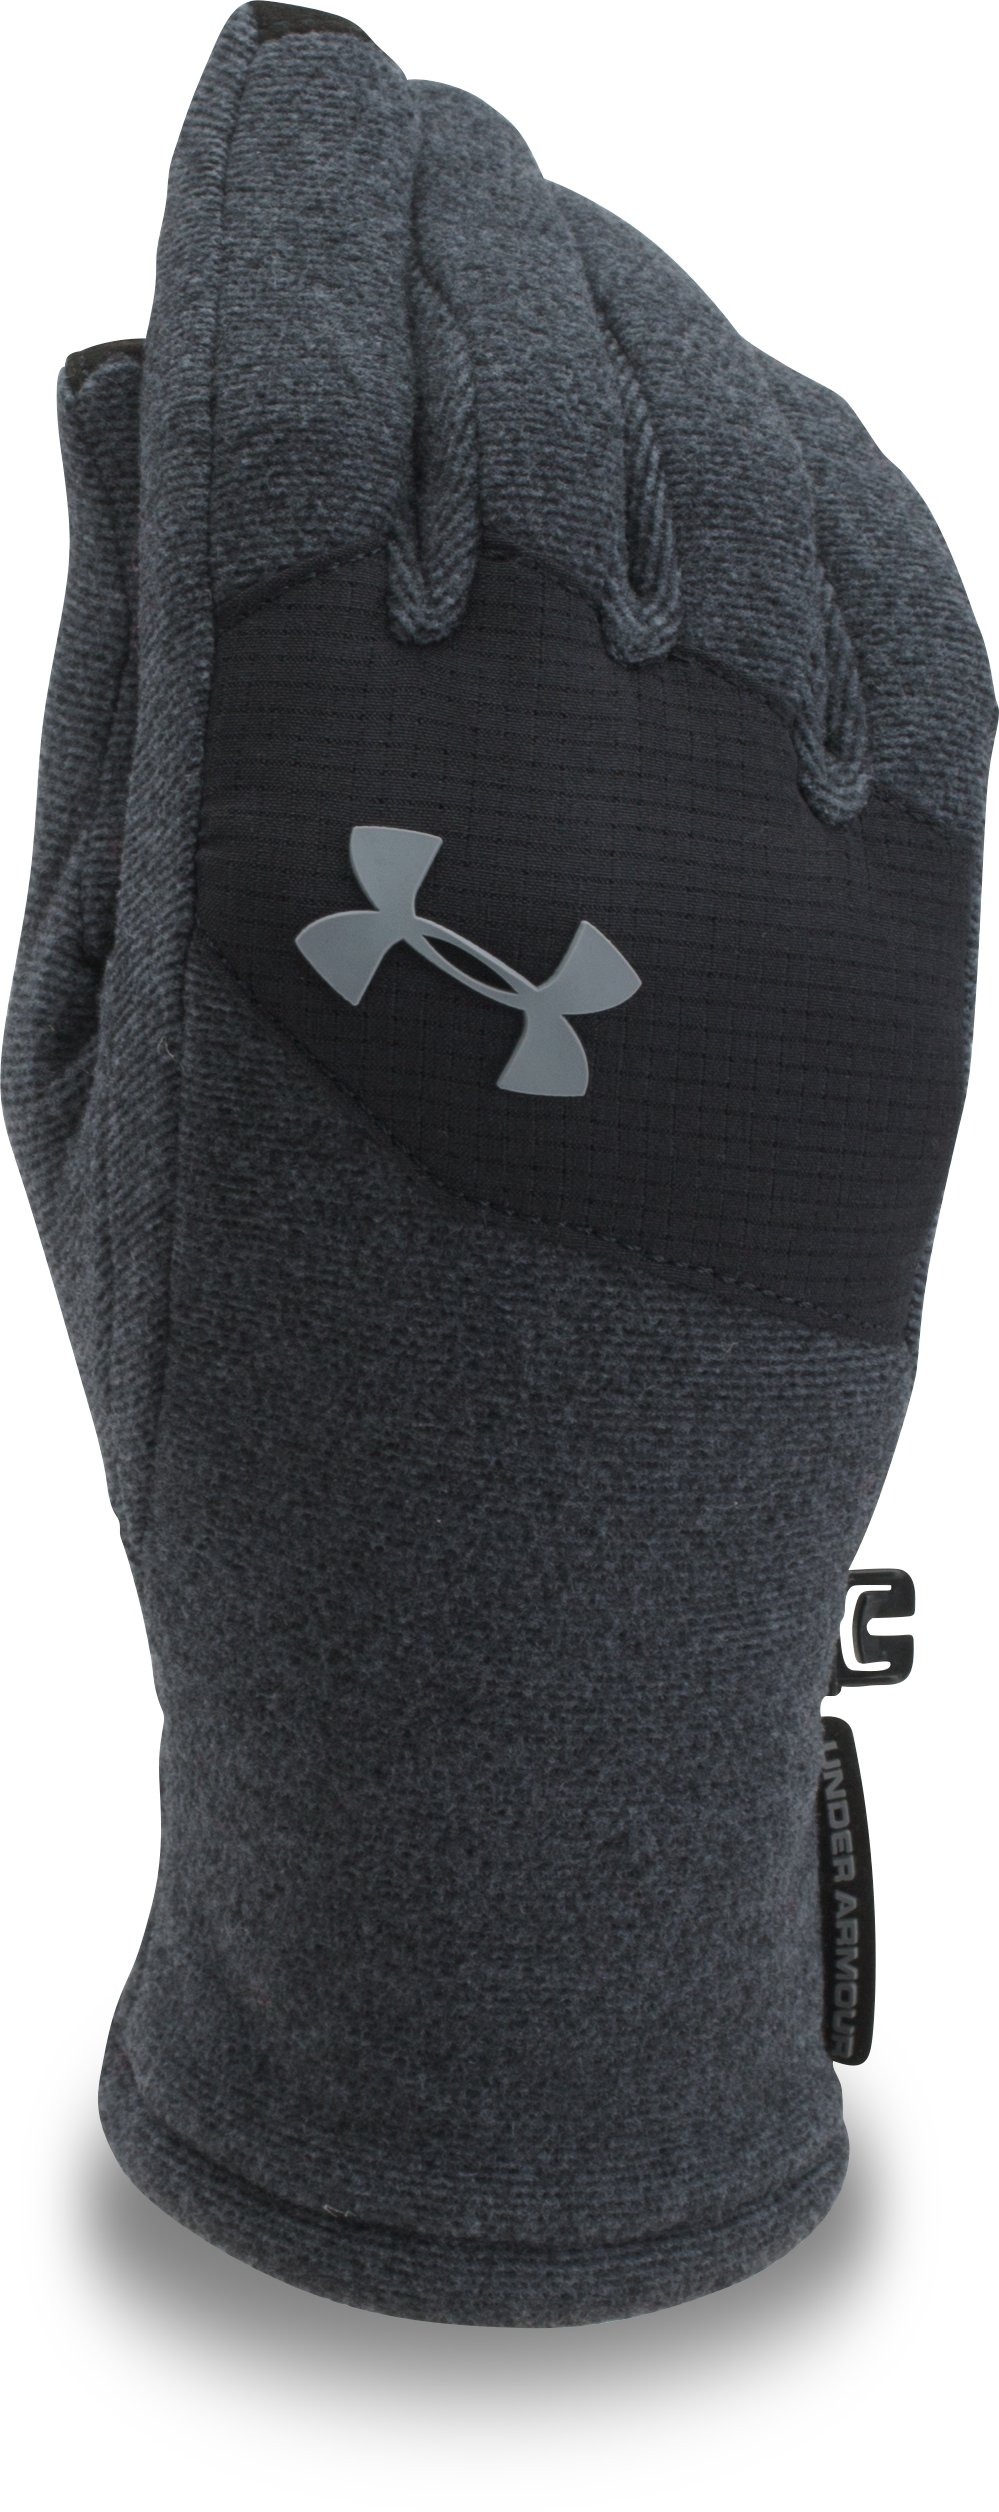 Kids' ColdGear® Infrared Fleece Gloves, Black